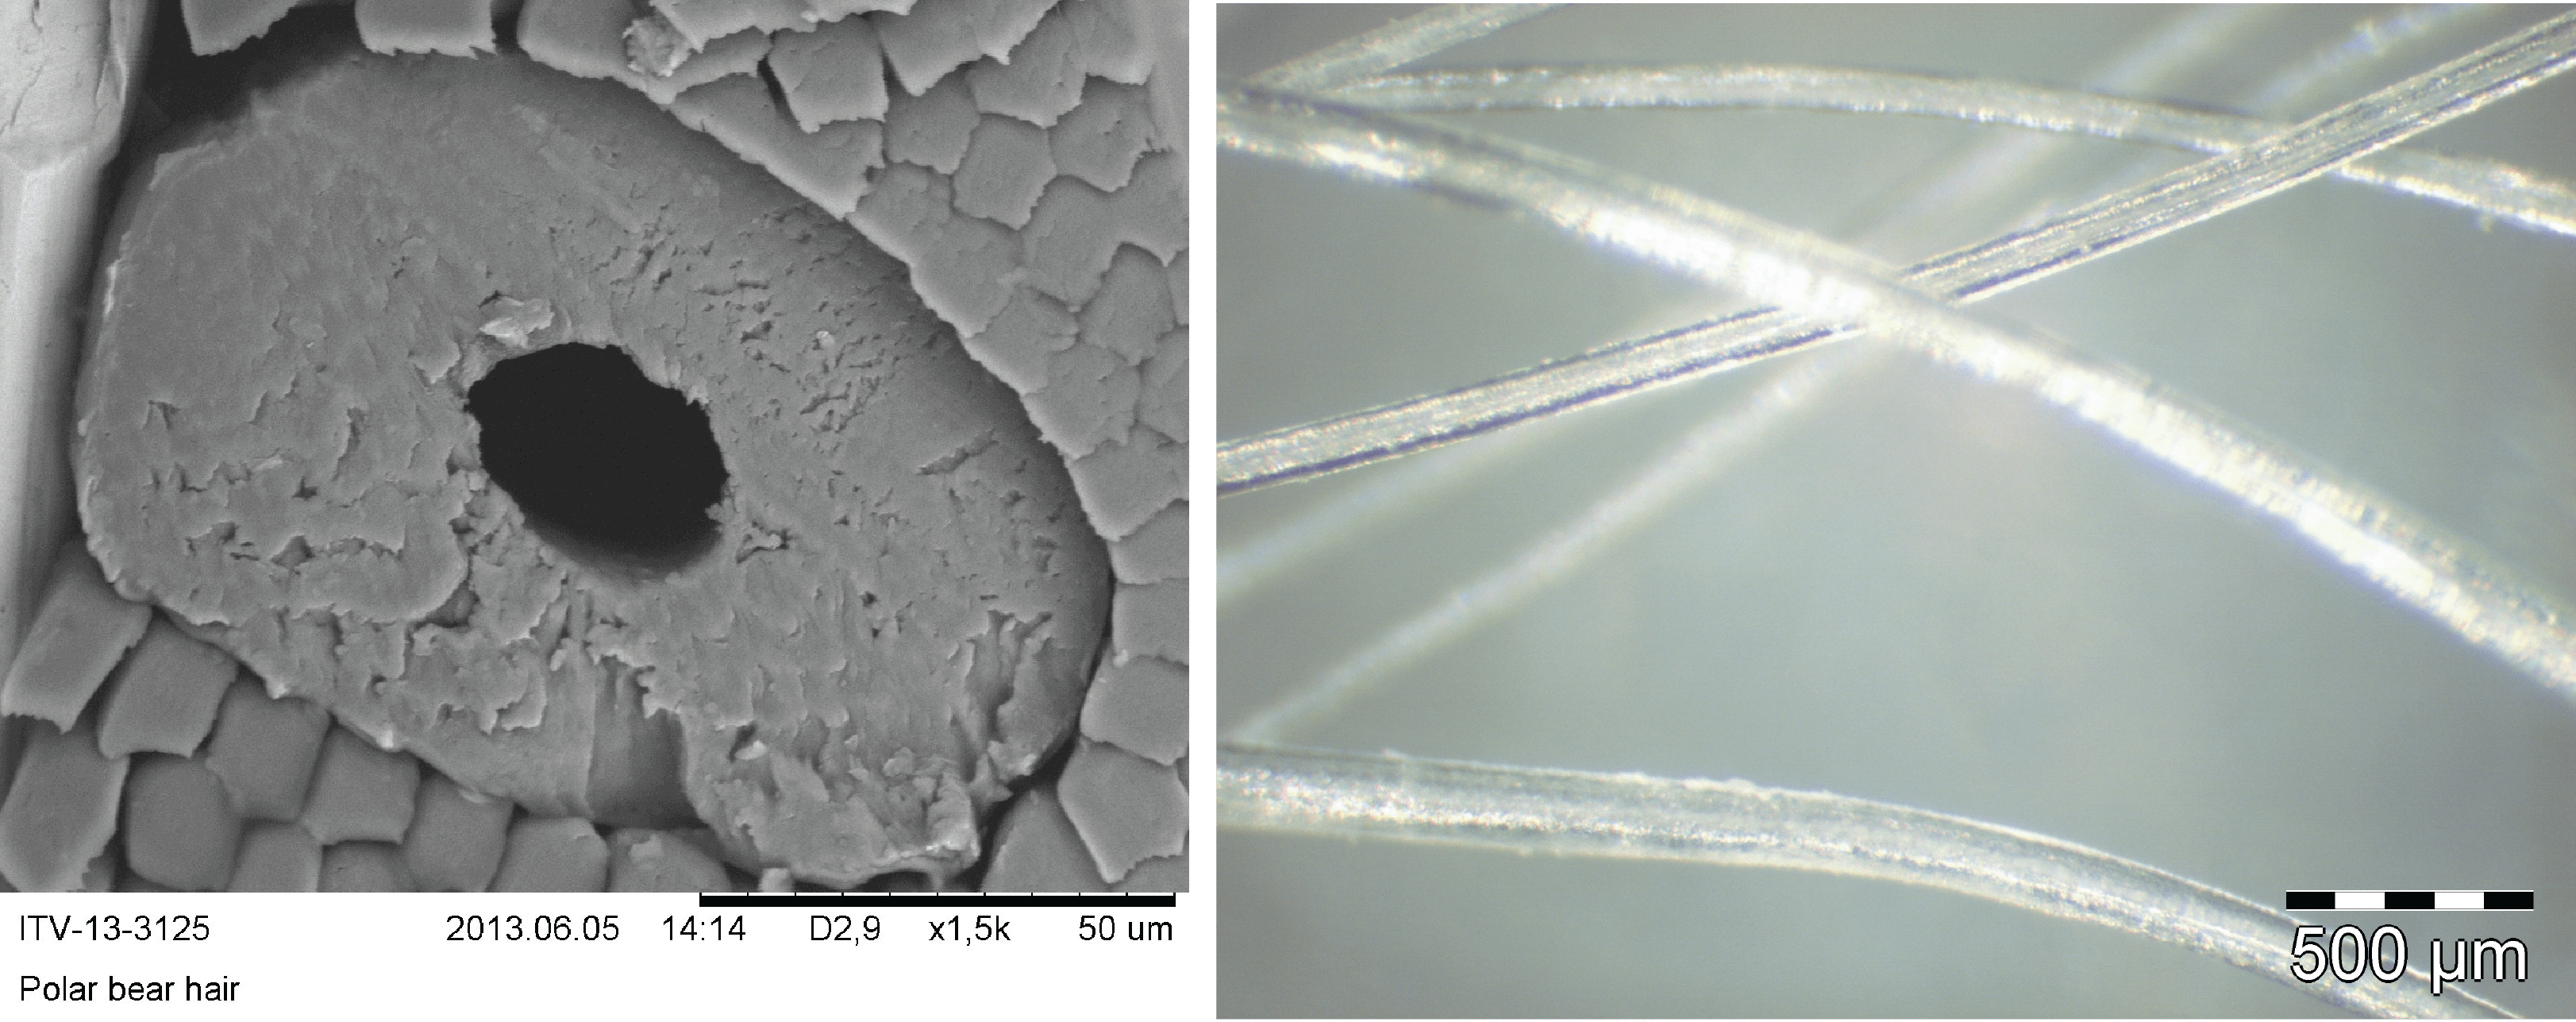 Figure 2. Left: A cross sectional SEM image of the polar bear's hair. Right: Microscopic image of the polar bear transparent hairs [4].